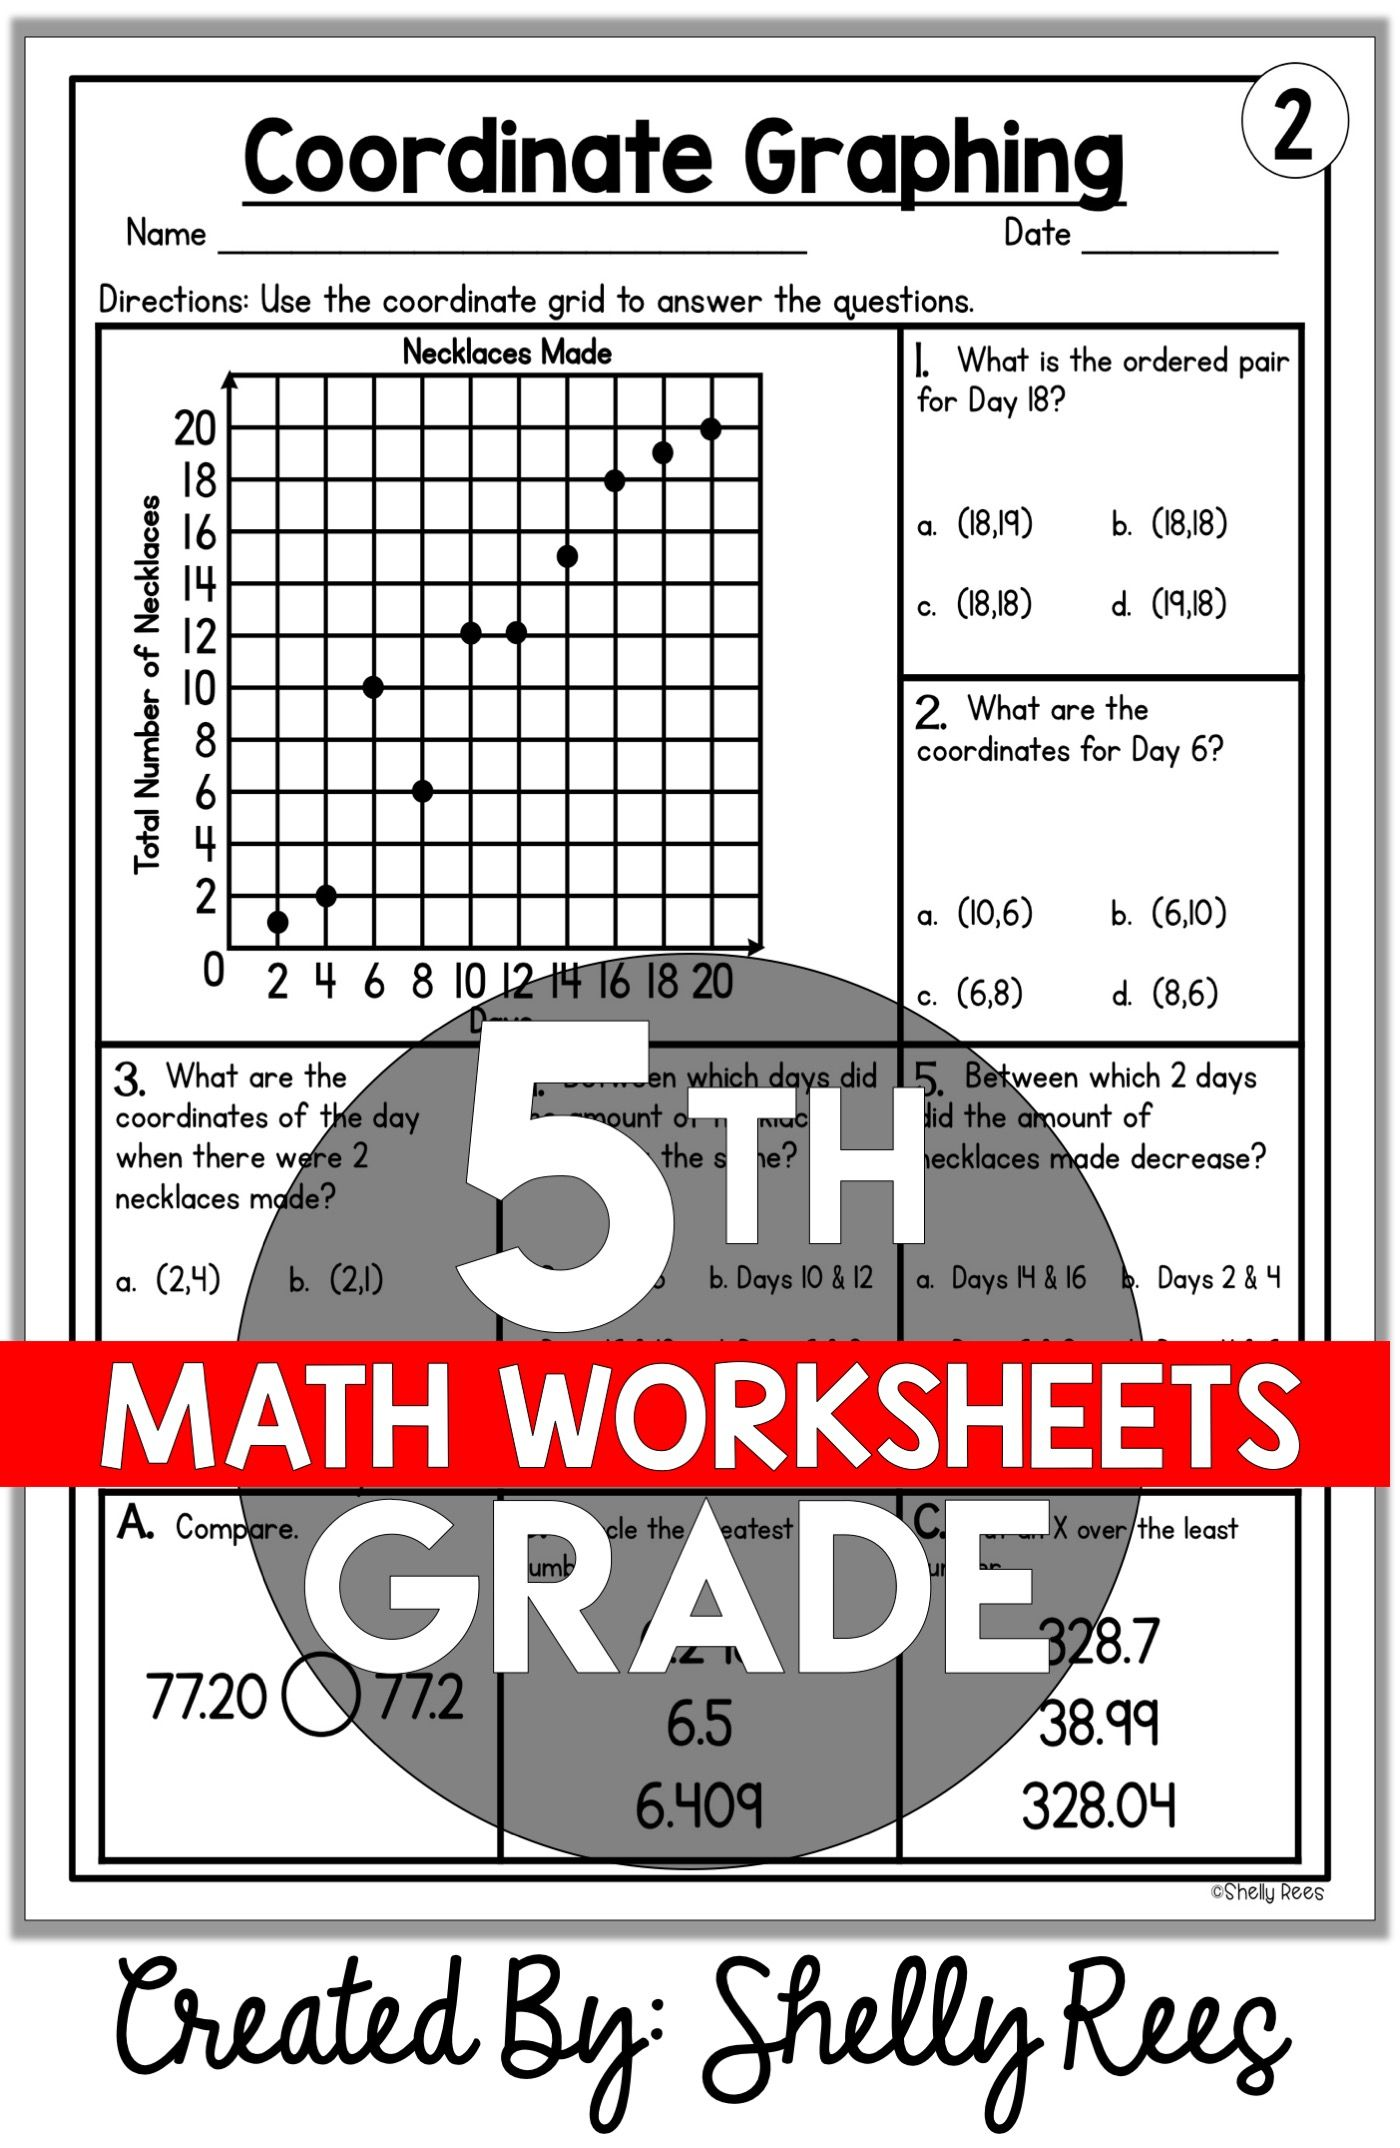 5th Grade Math Worksheets Free And Printable Appletastic Learning Math Review Worksheets Grade 5 Math Worksheets 5th Grade Math [ 2148 x 1400 Pixel ]